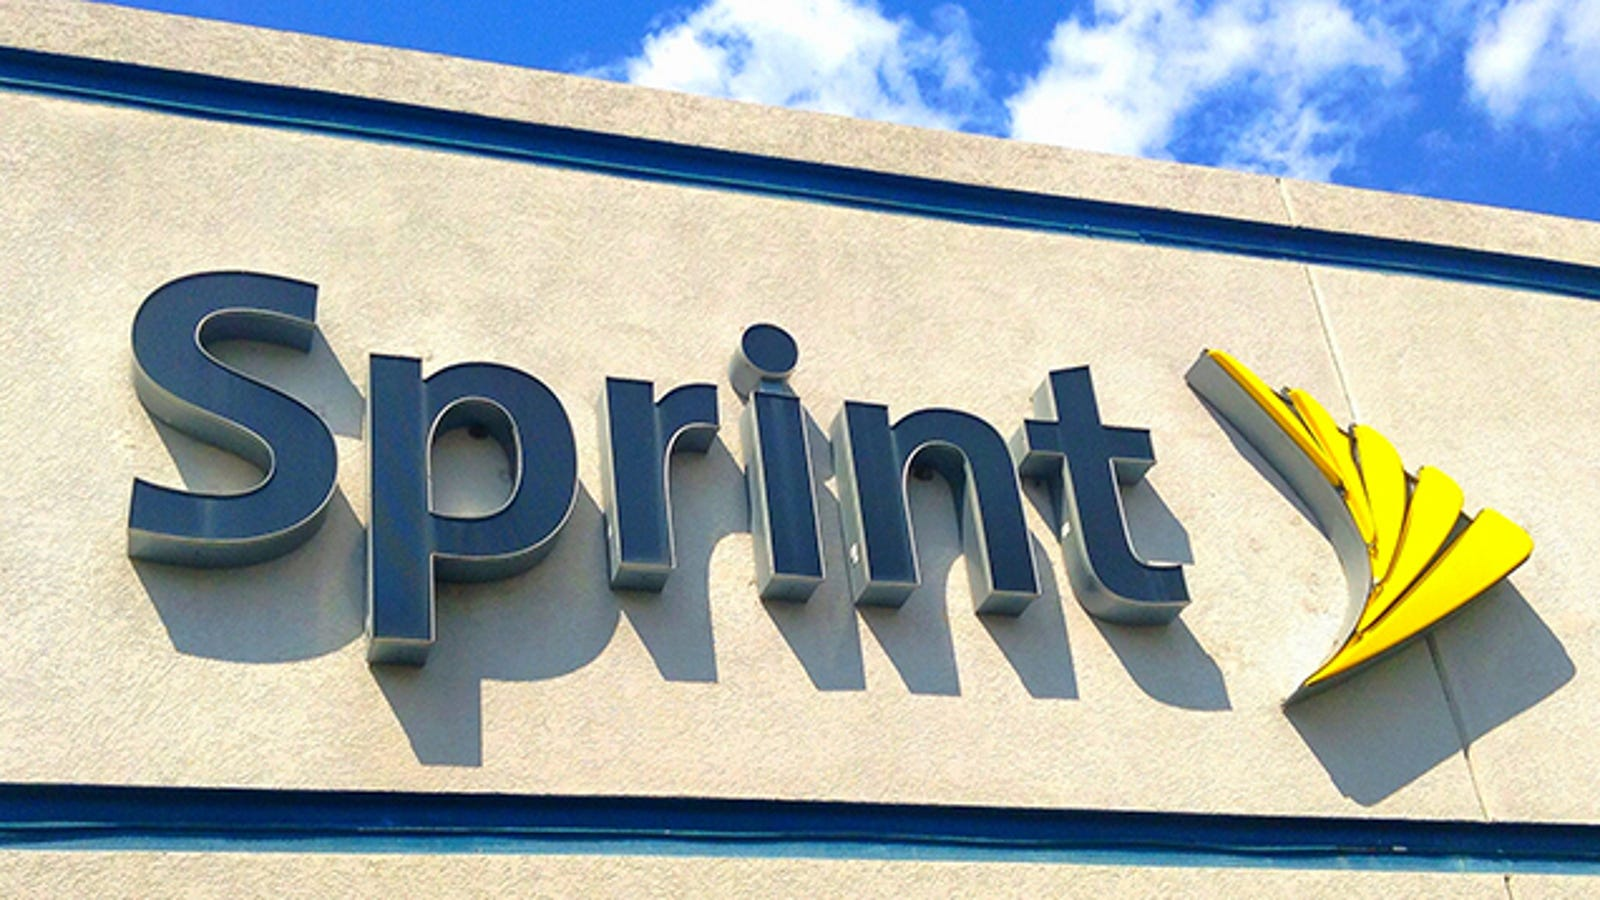 Sprint Plans to Eliminate Two-Year Contracts, Move